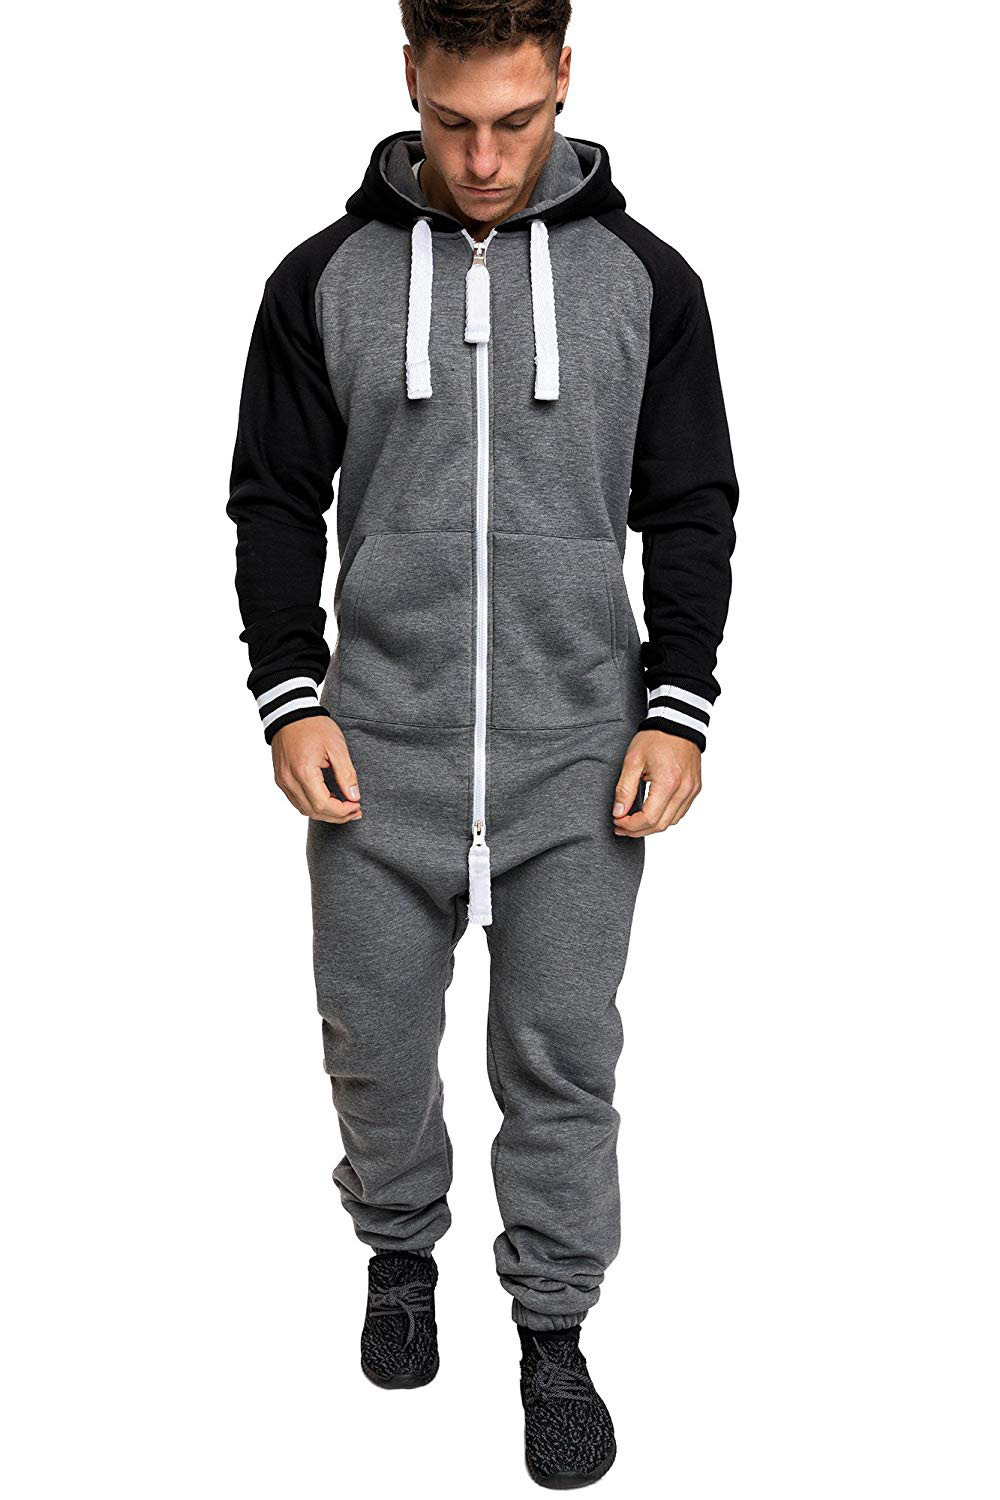 Casual Autumn Hooded Tracksuit Jumpsuit Long Pants Romper For Male Mens Fleece warm Overalls Sweatshirts Male Streetwear X9126 28